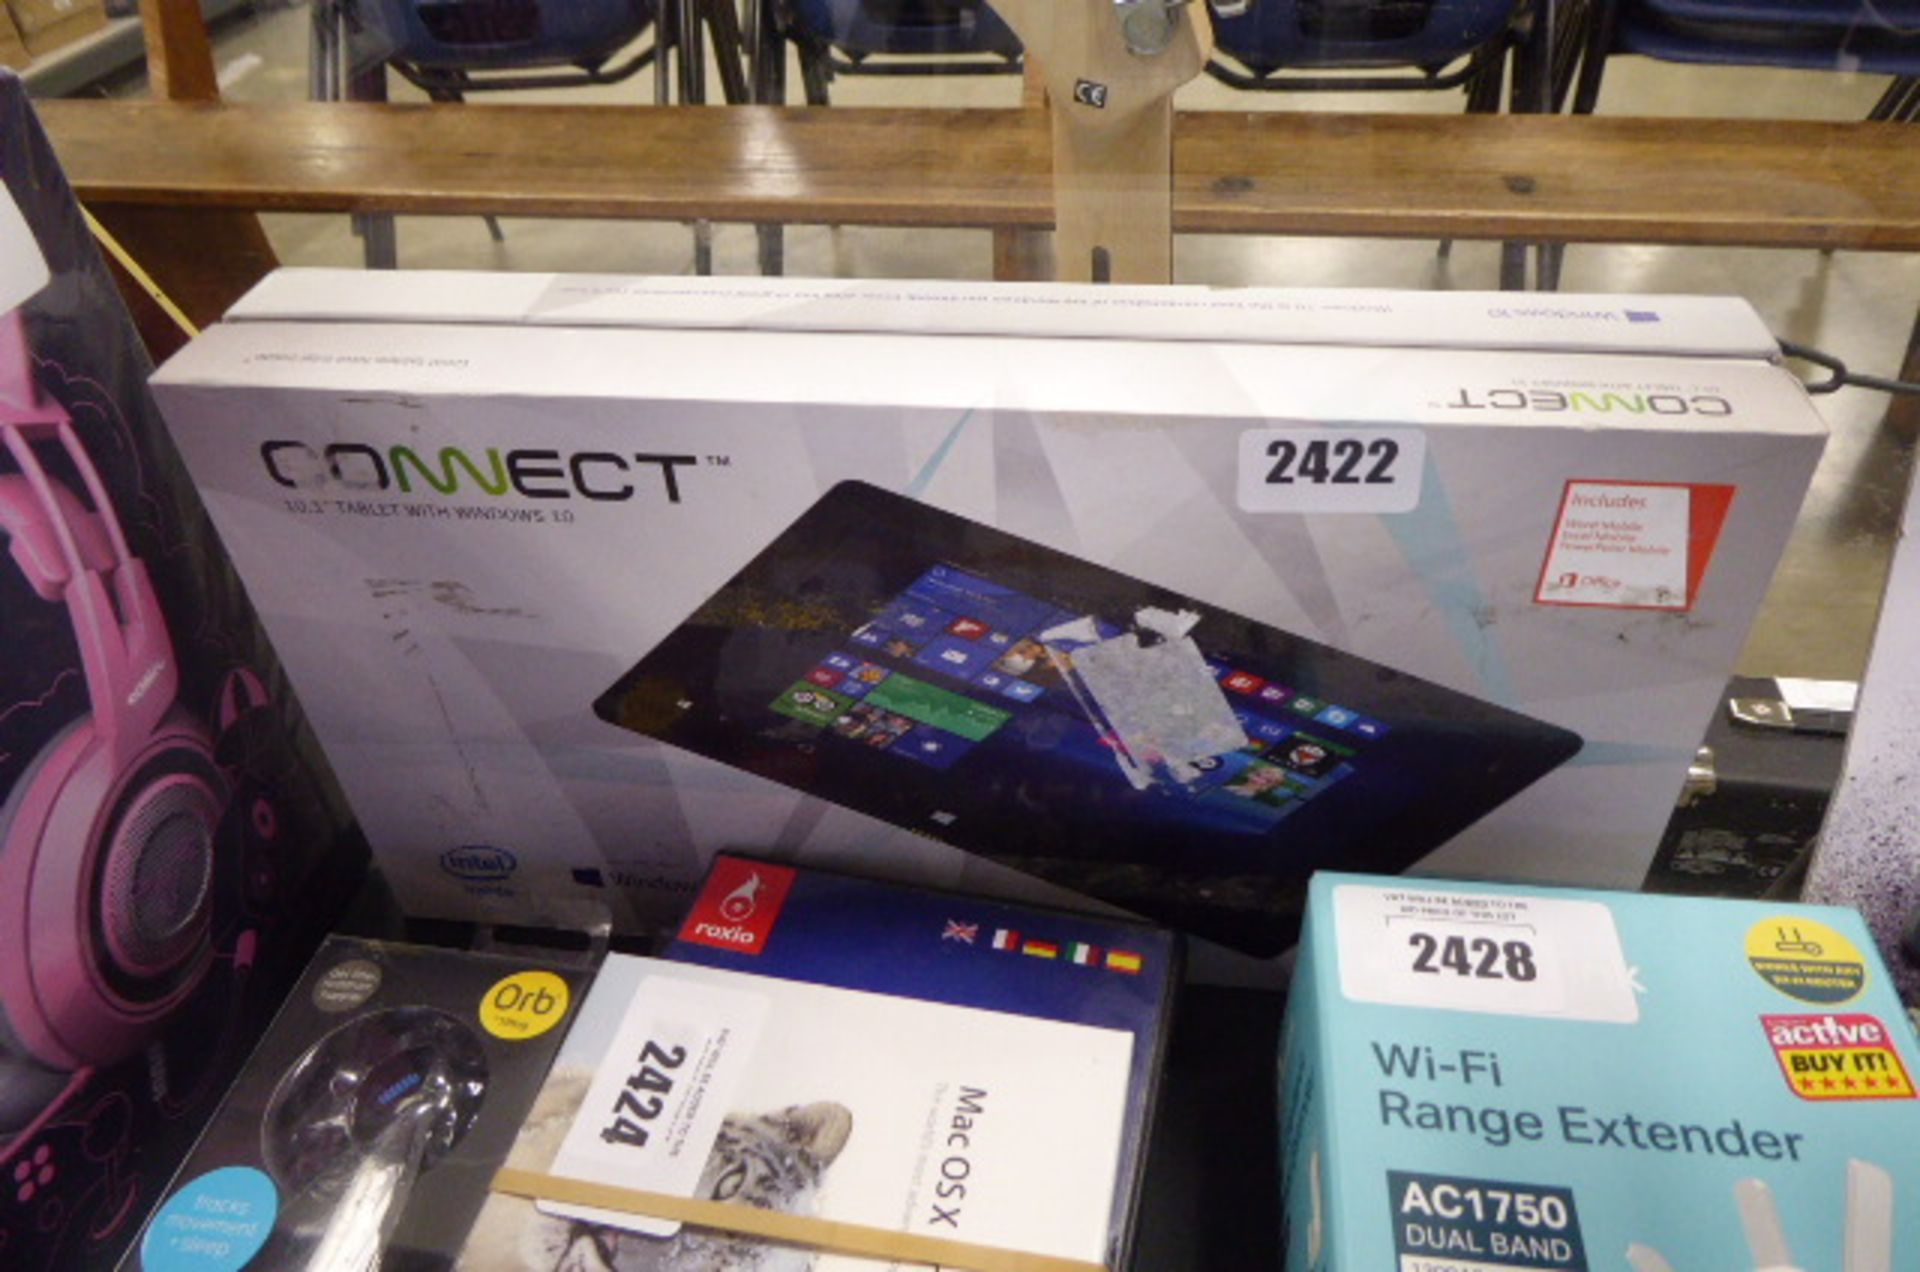 Lot 2422 - Connect 10.1'' tablet boxed